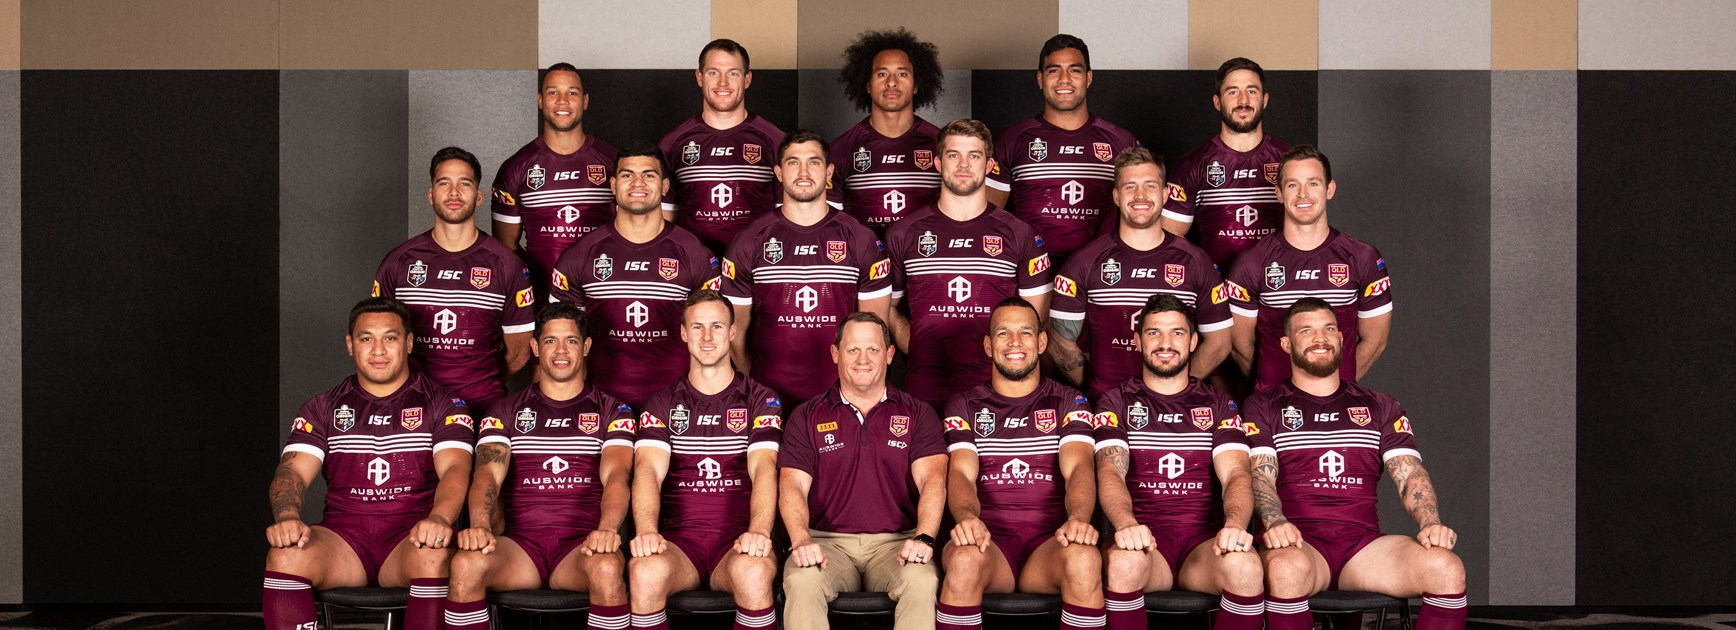 Maroons confirm Game III line up